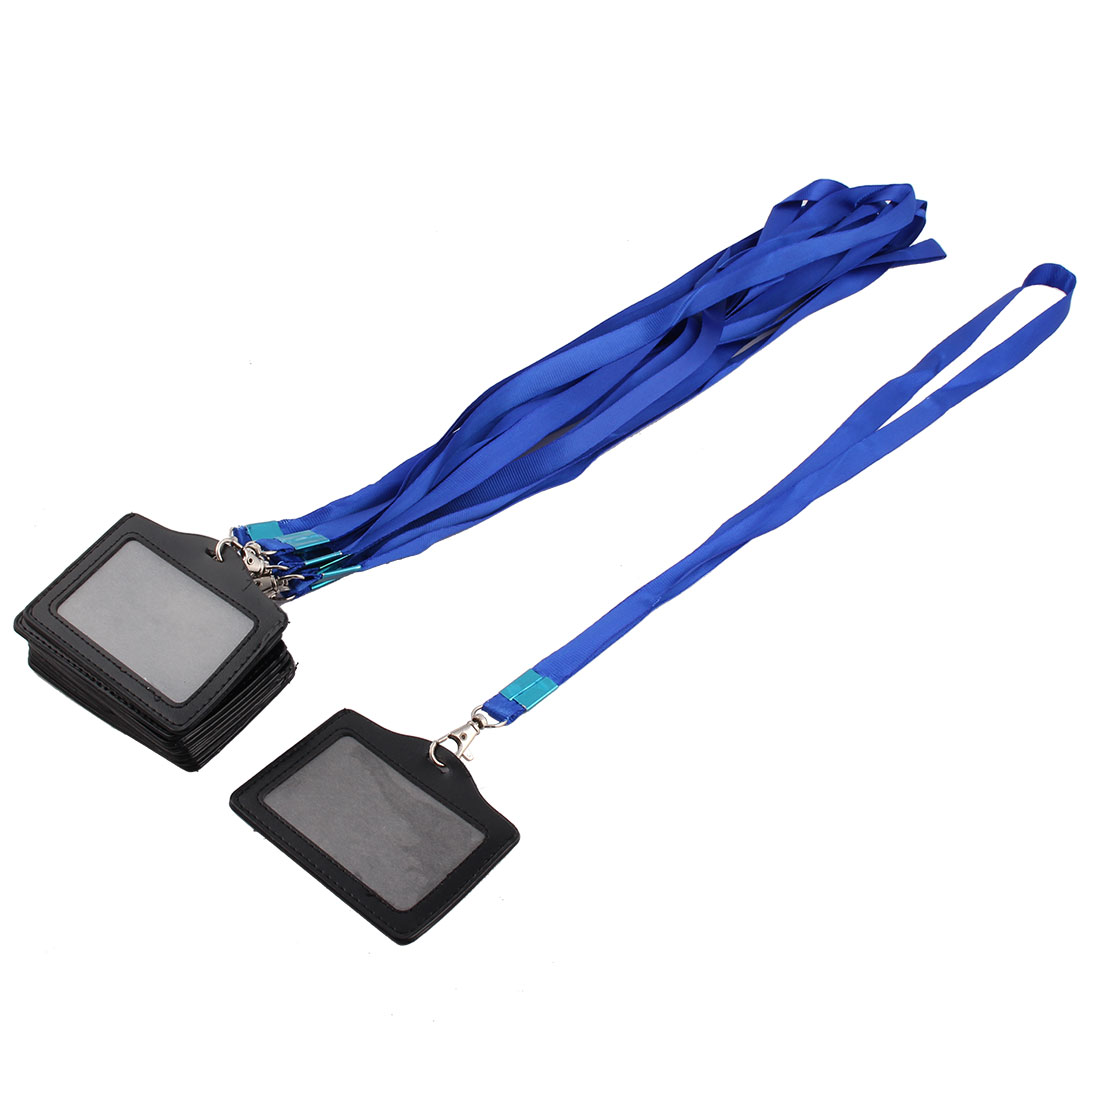 Faux Leather Lateral Design Lanyard Strap Name ID Card Holder Black Blue 10pcs